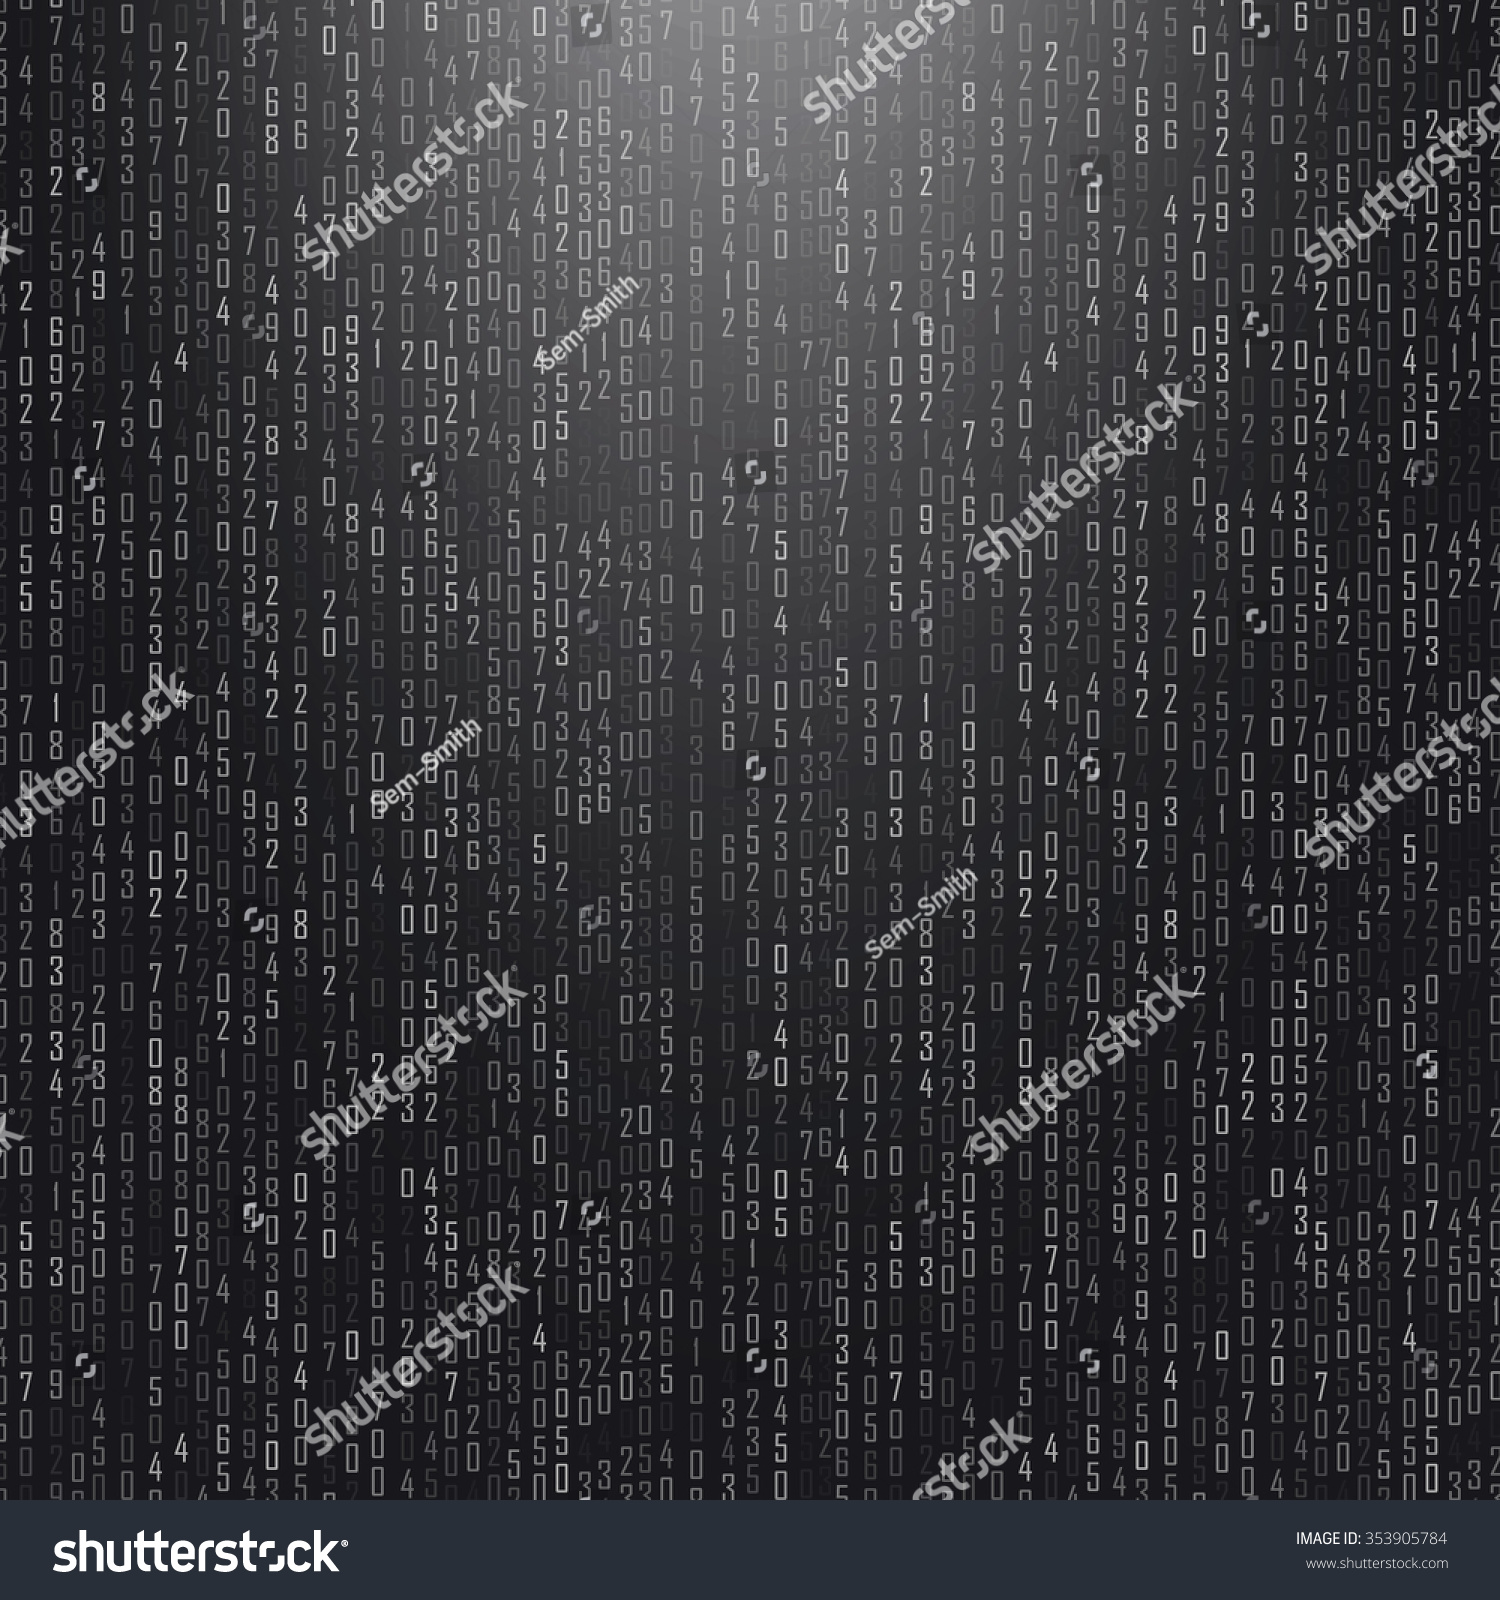 Abstract Composition Math Technology Startup Screen Stock Vector ...